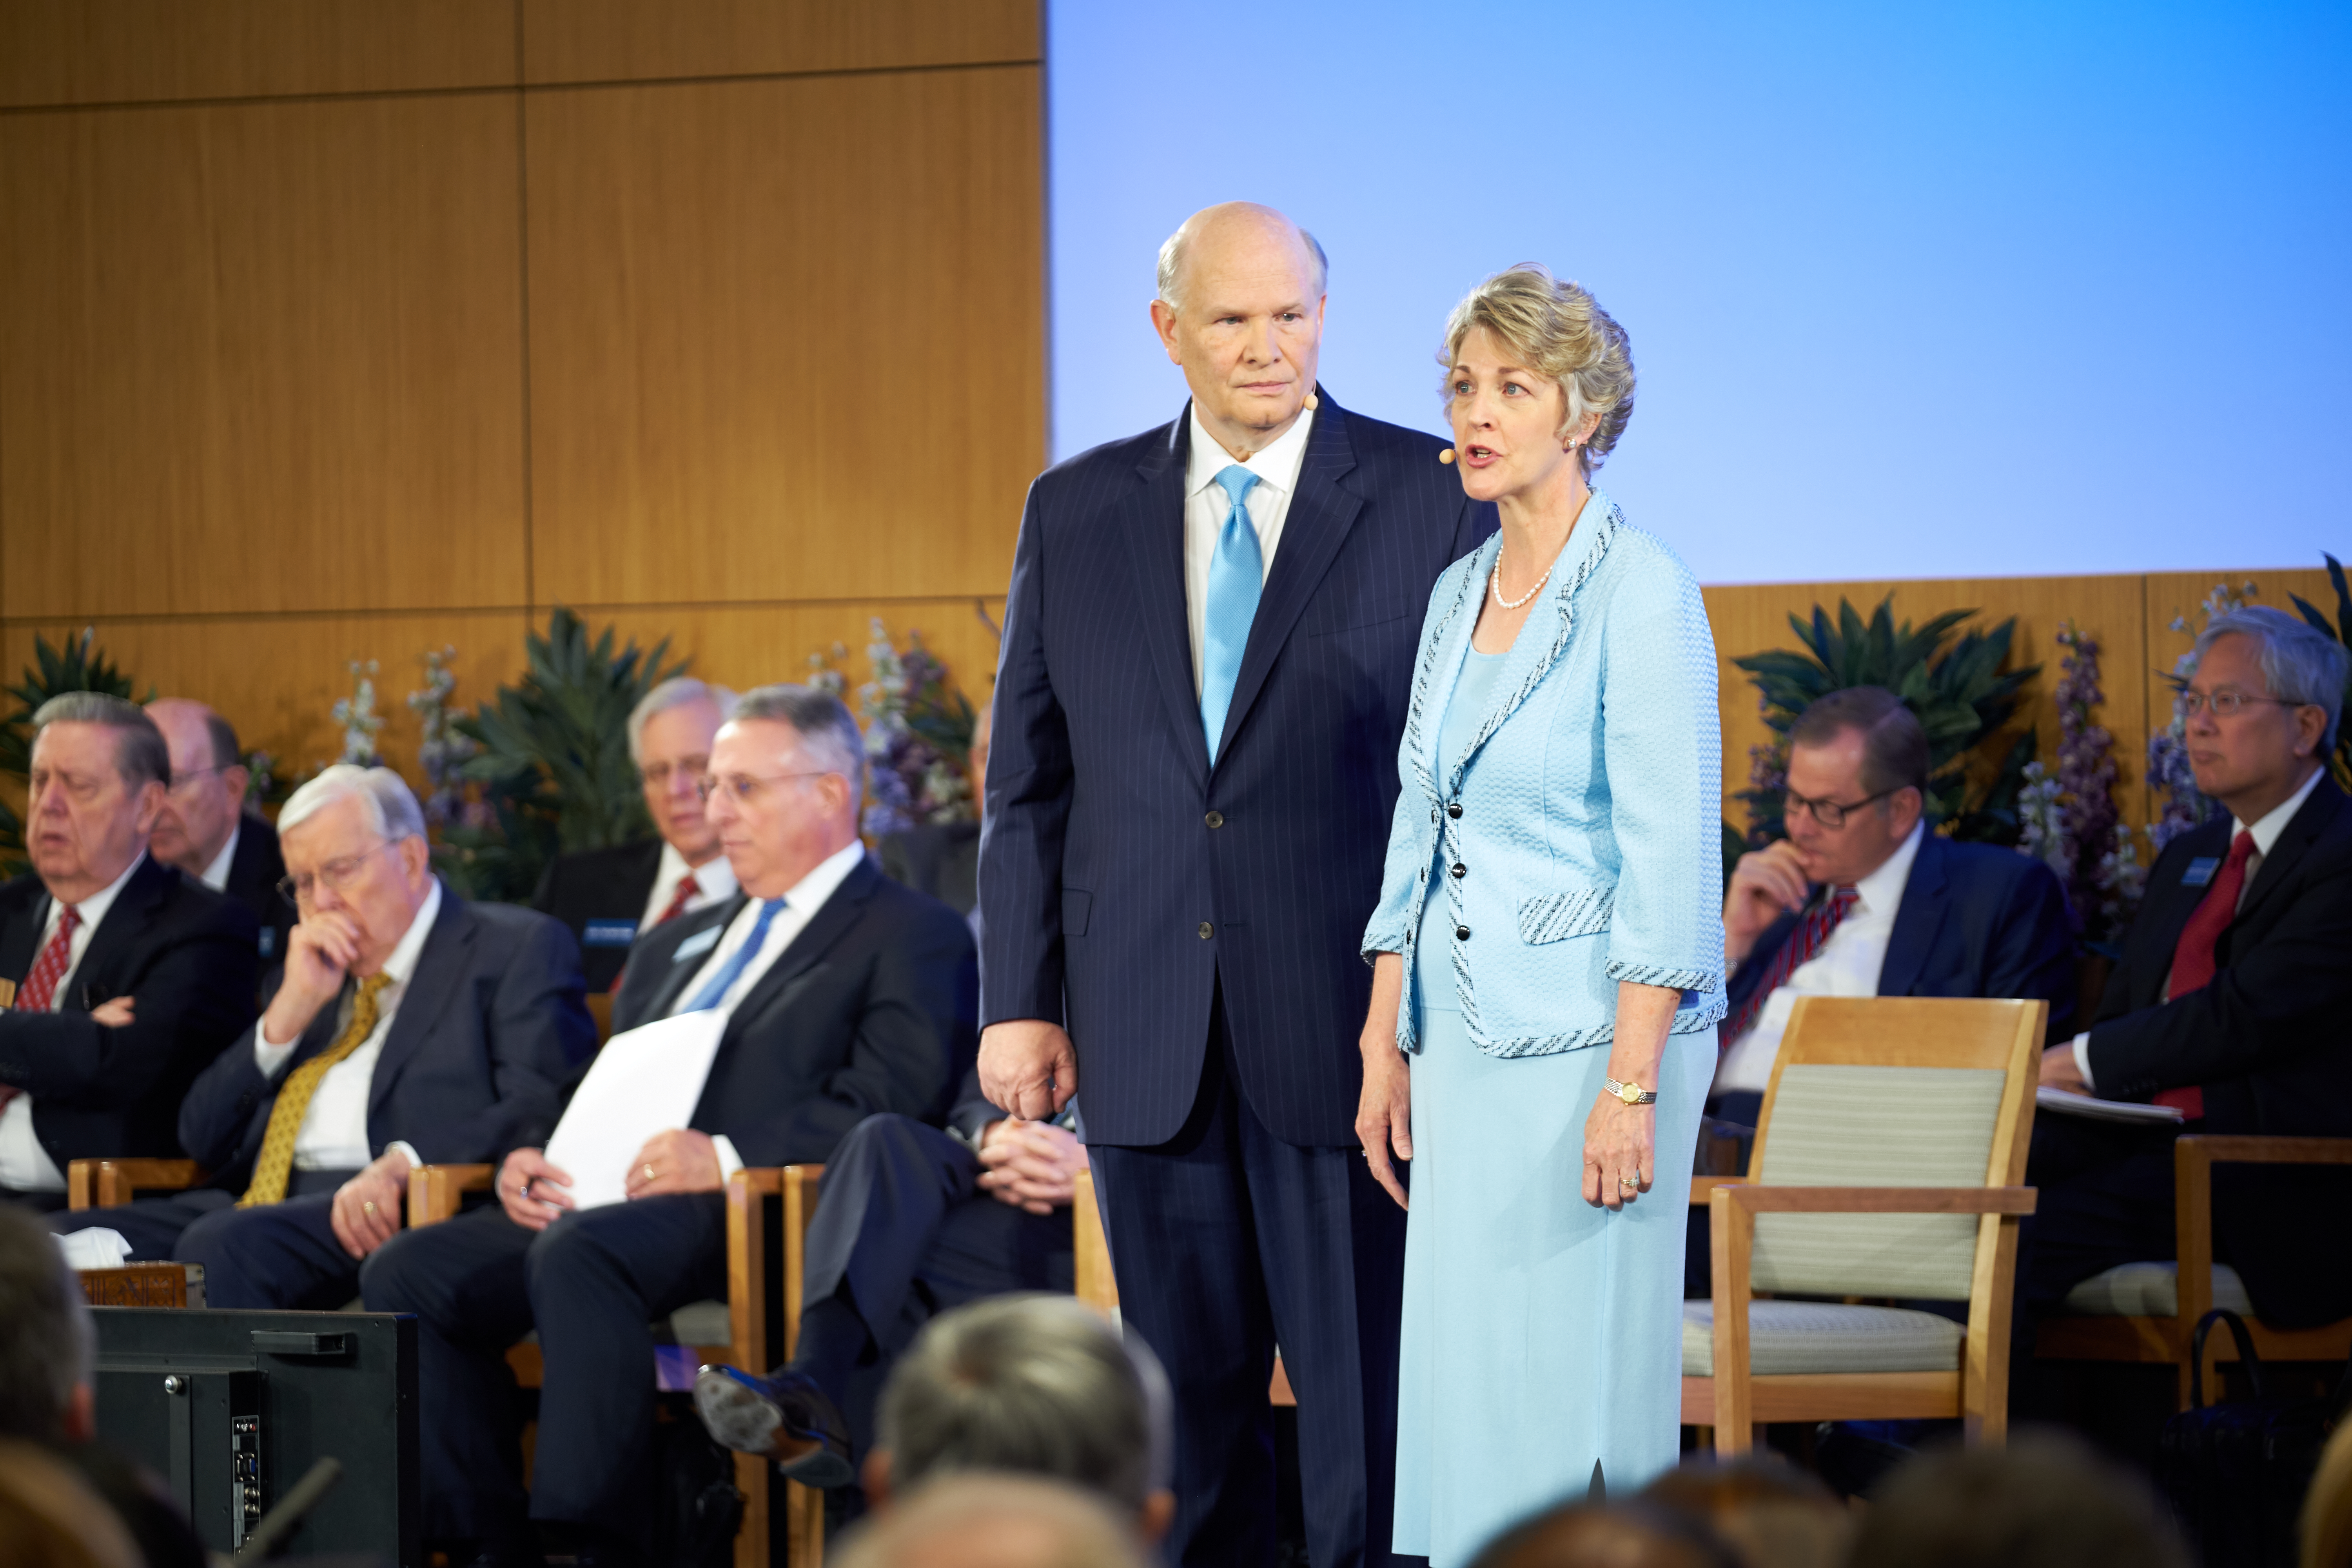 Elder Dale G. Renlund and his wife, Sister Ruth Renlund, speak during the 2018 Mission Leadership Seminar at the Provo Missionary Training Center on June 24-26.